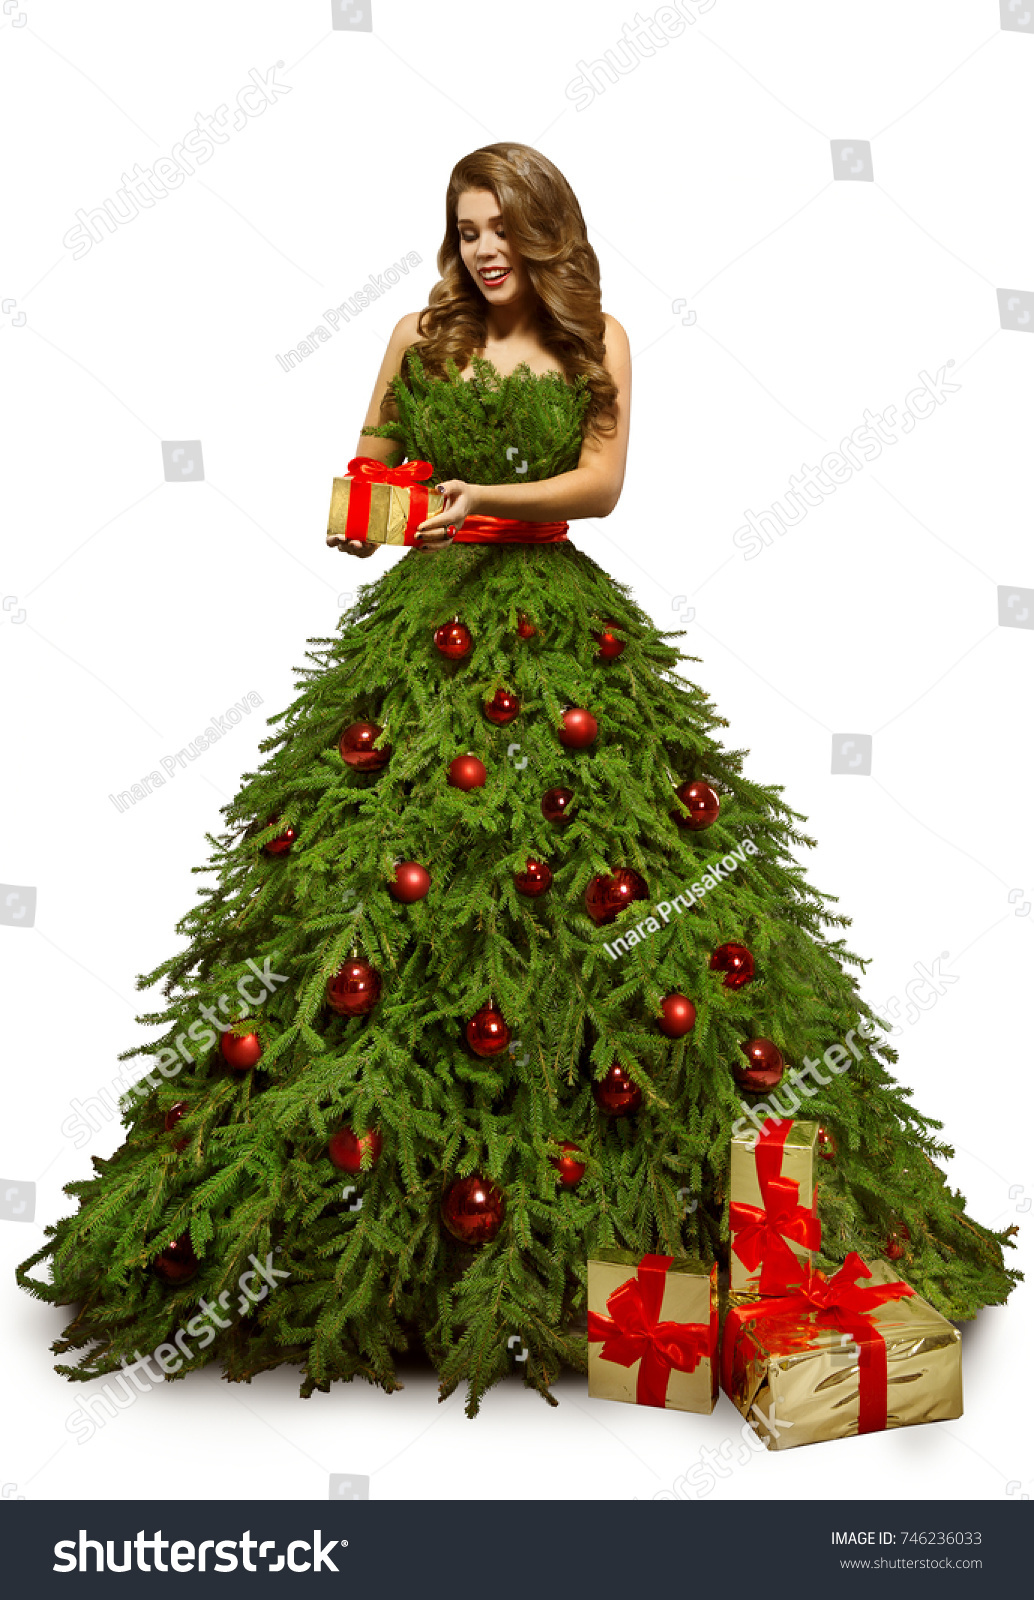 The lady eith rhe christmas tree covered in gifts